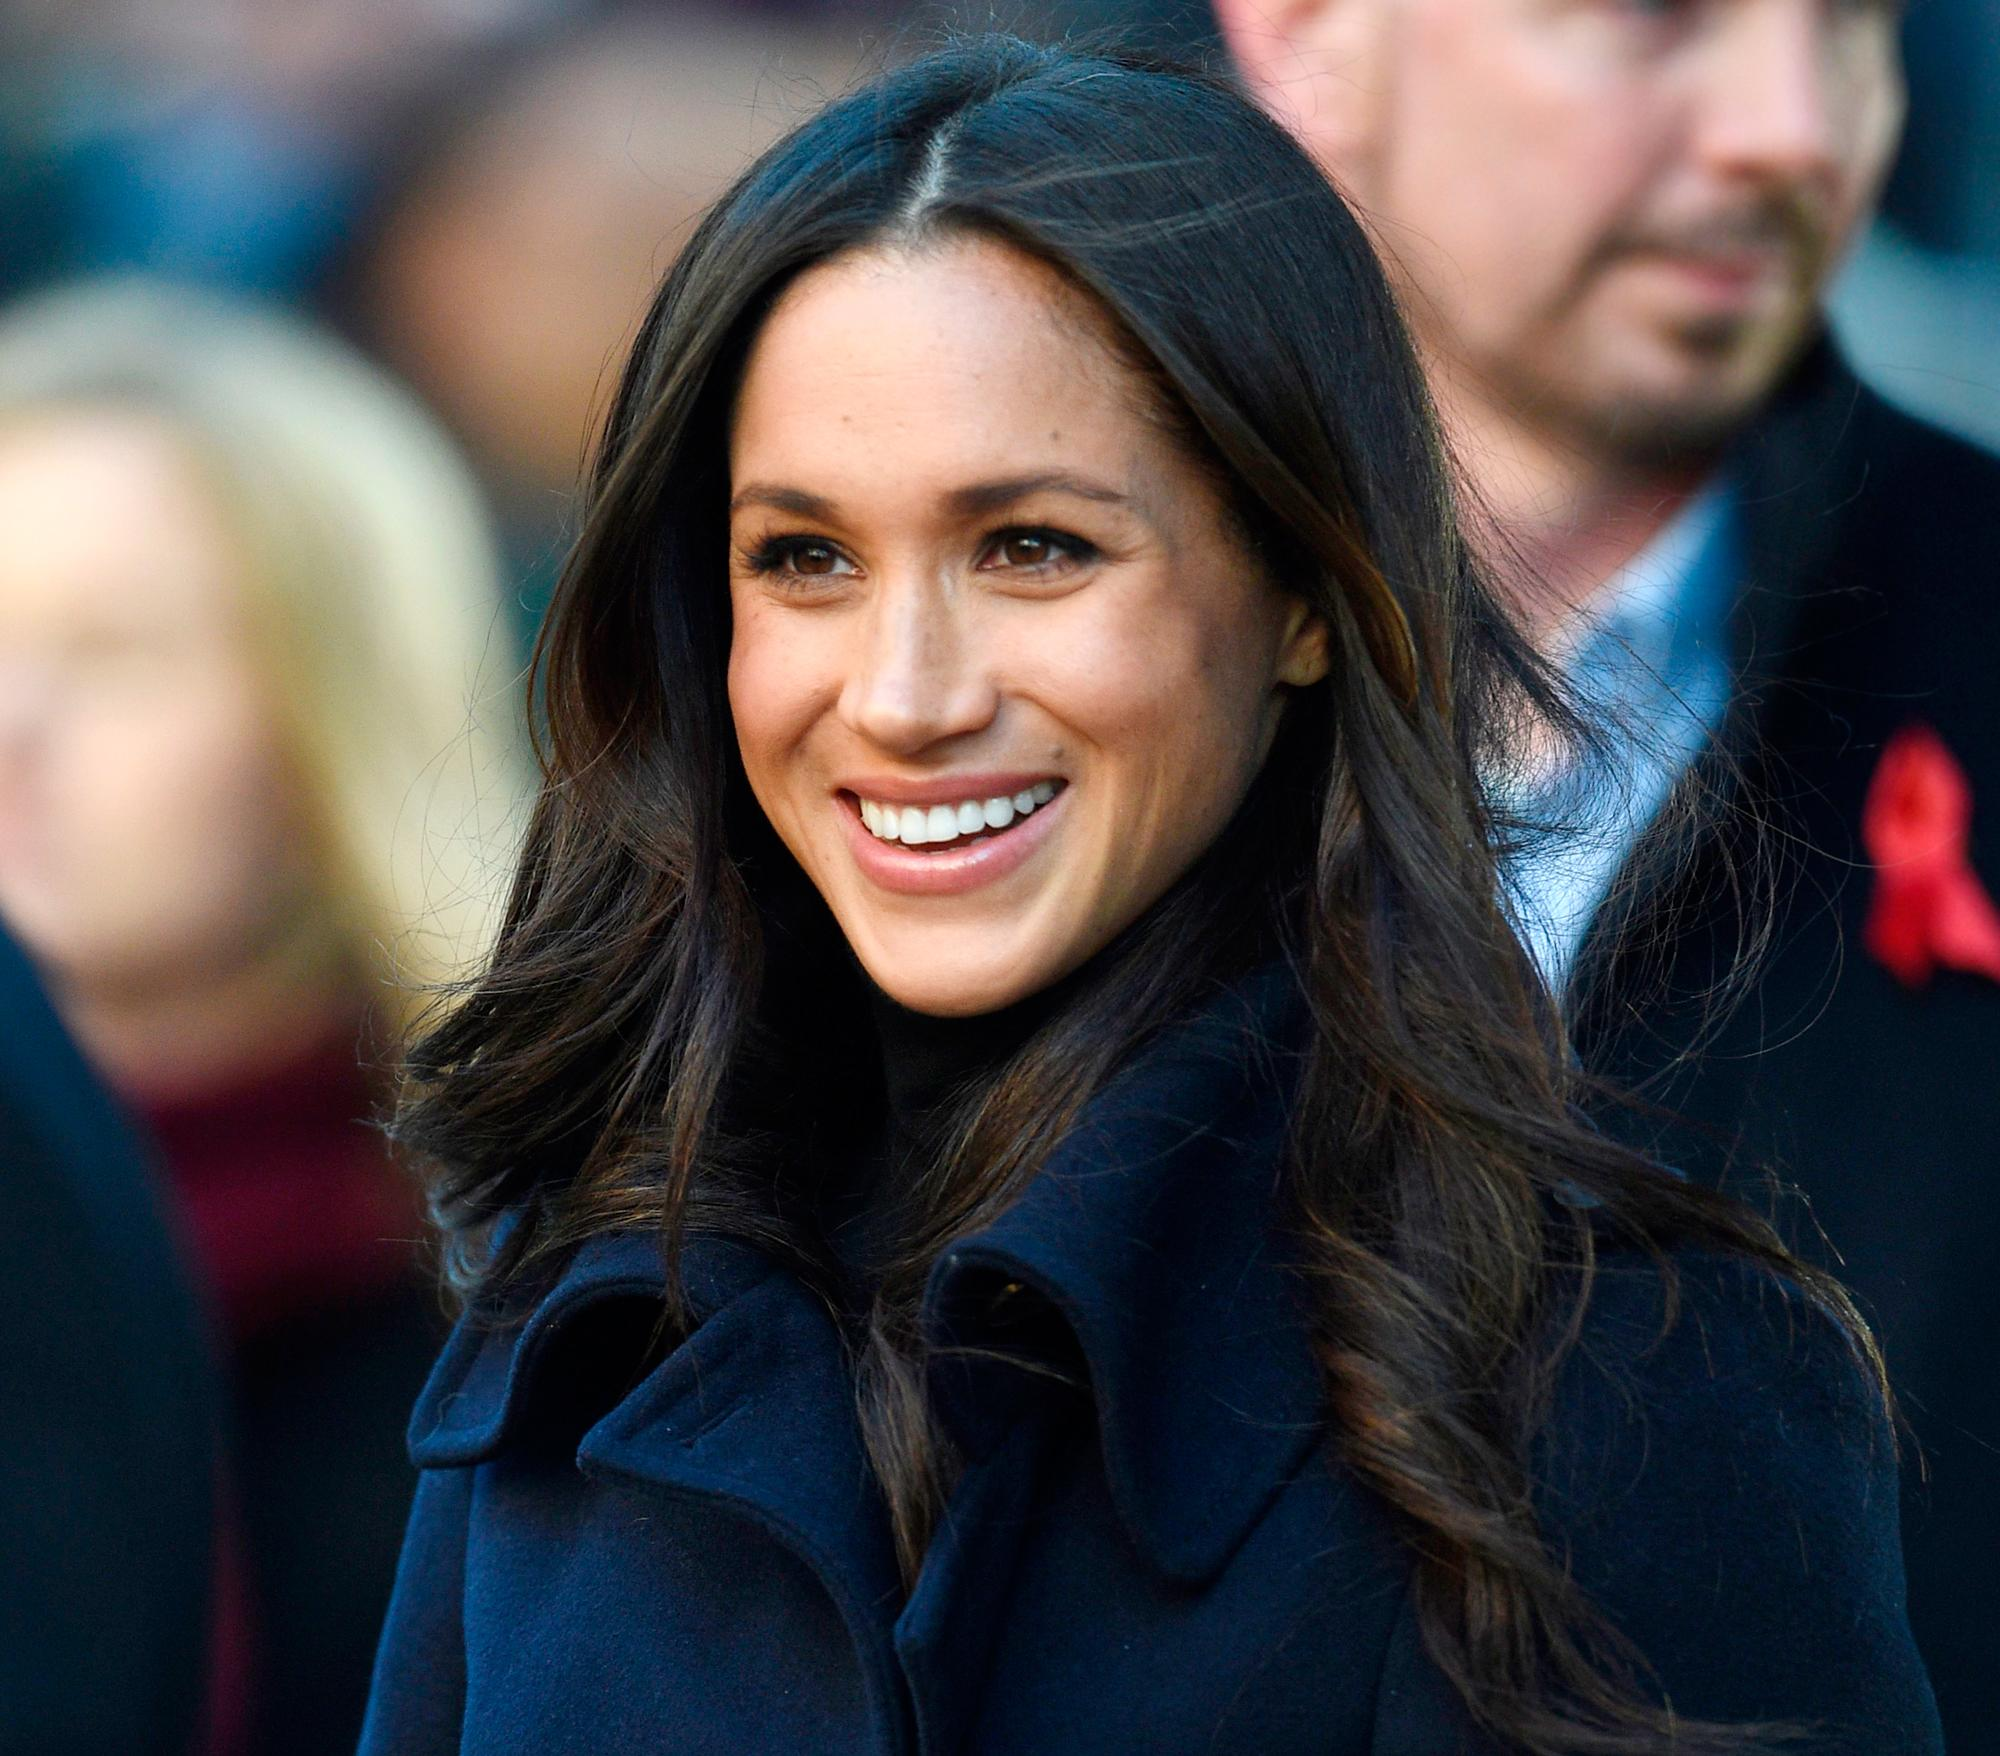 Watch Meghan Markle Give Solid Fashion Advice In These Old